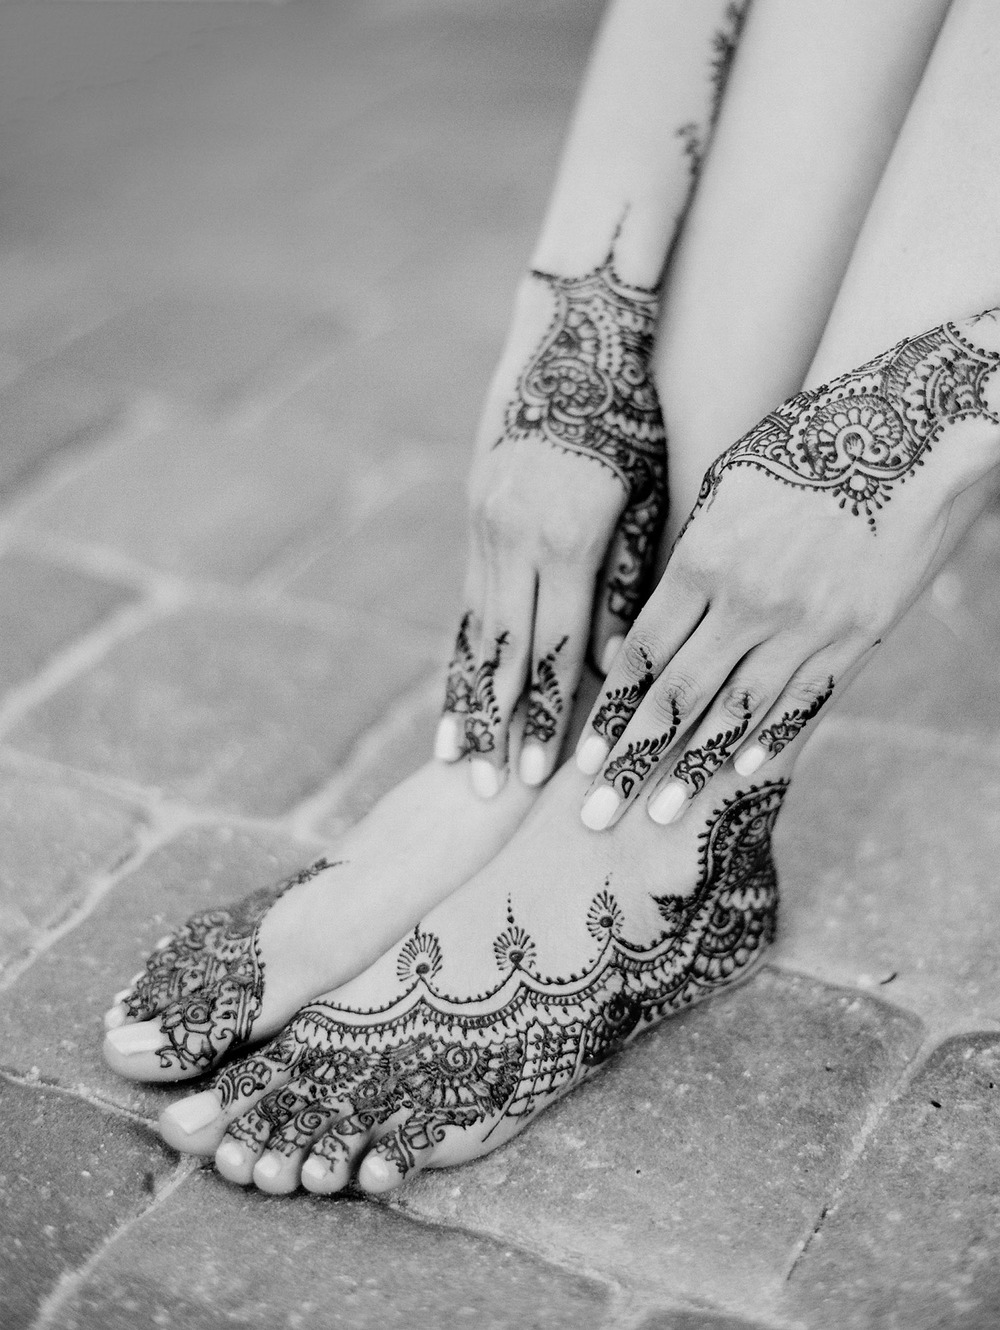 minimalist mehndi designs on indian bride's hands and feet during her mehndi ceremony in palm coast florida at hammock beach resort indian wedding planned by Reveology and photographed by destination wedding photographer Lexia Frank - a film photographer and top indian wedding photographer shooting destinations worldwide and luxury indian weddings